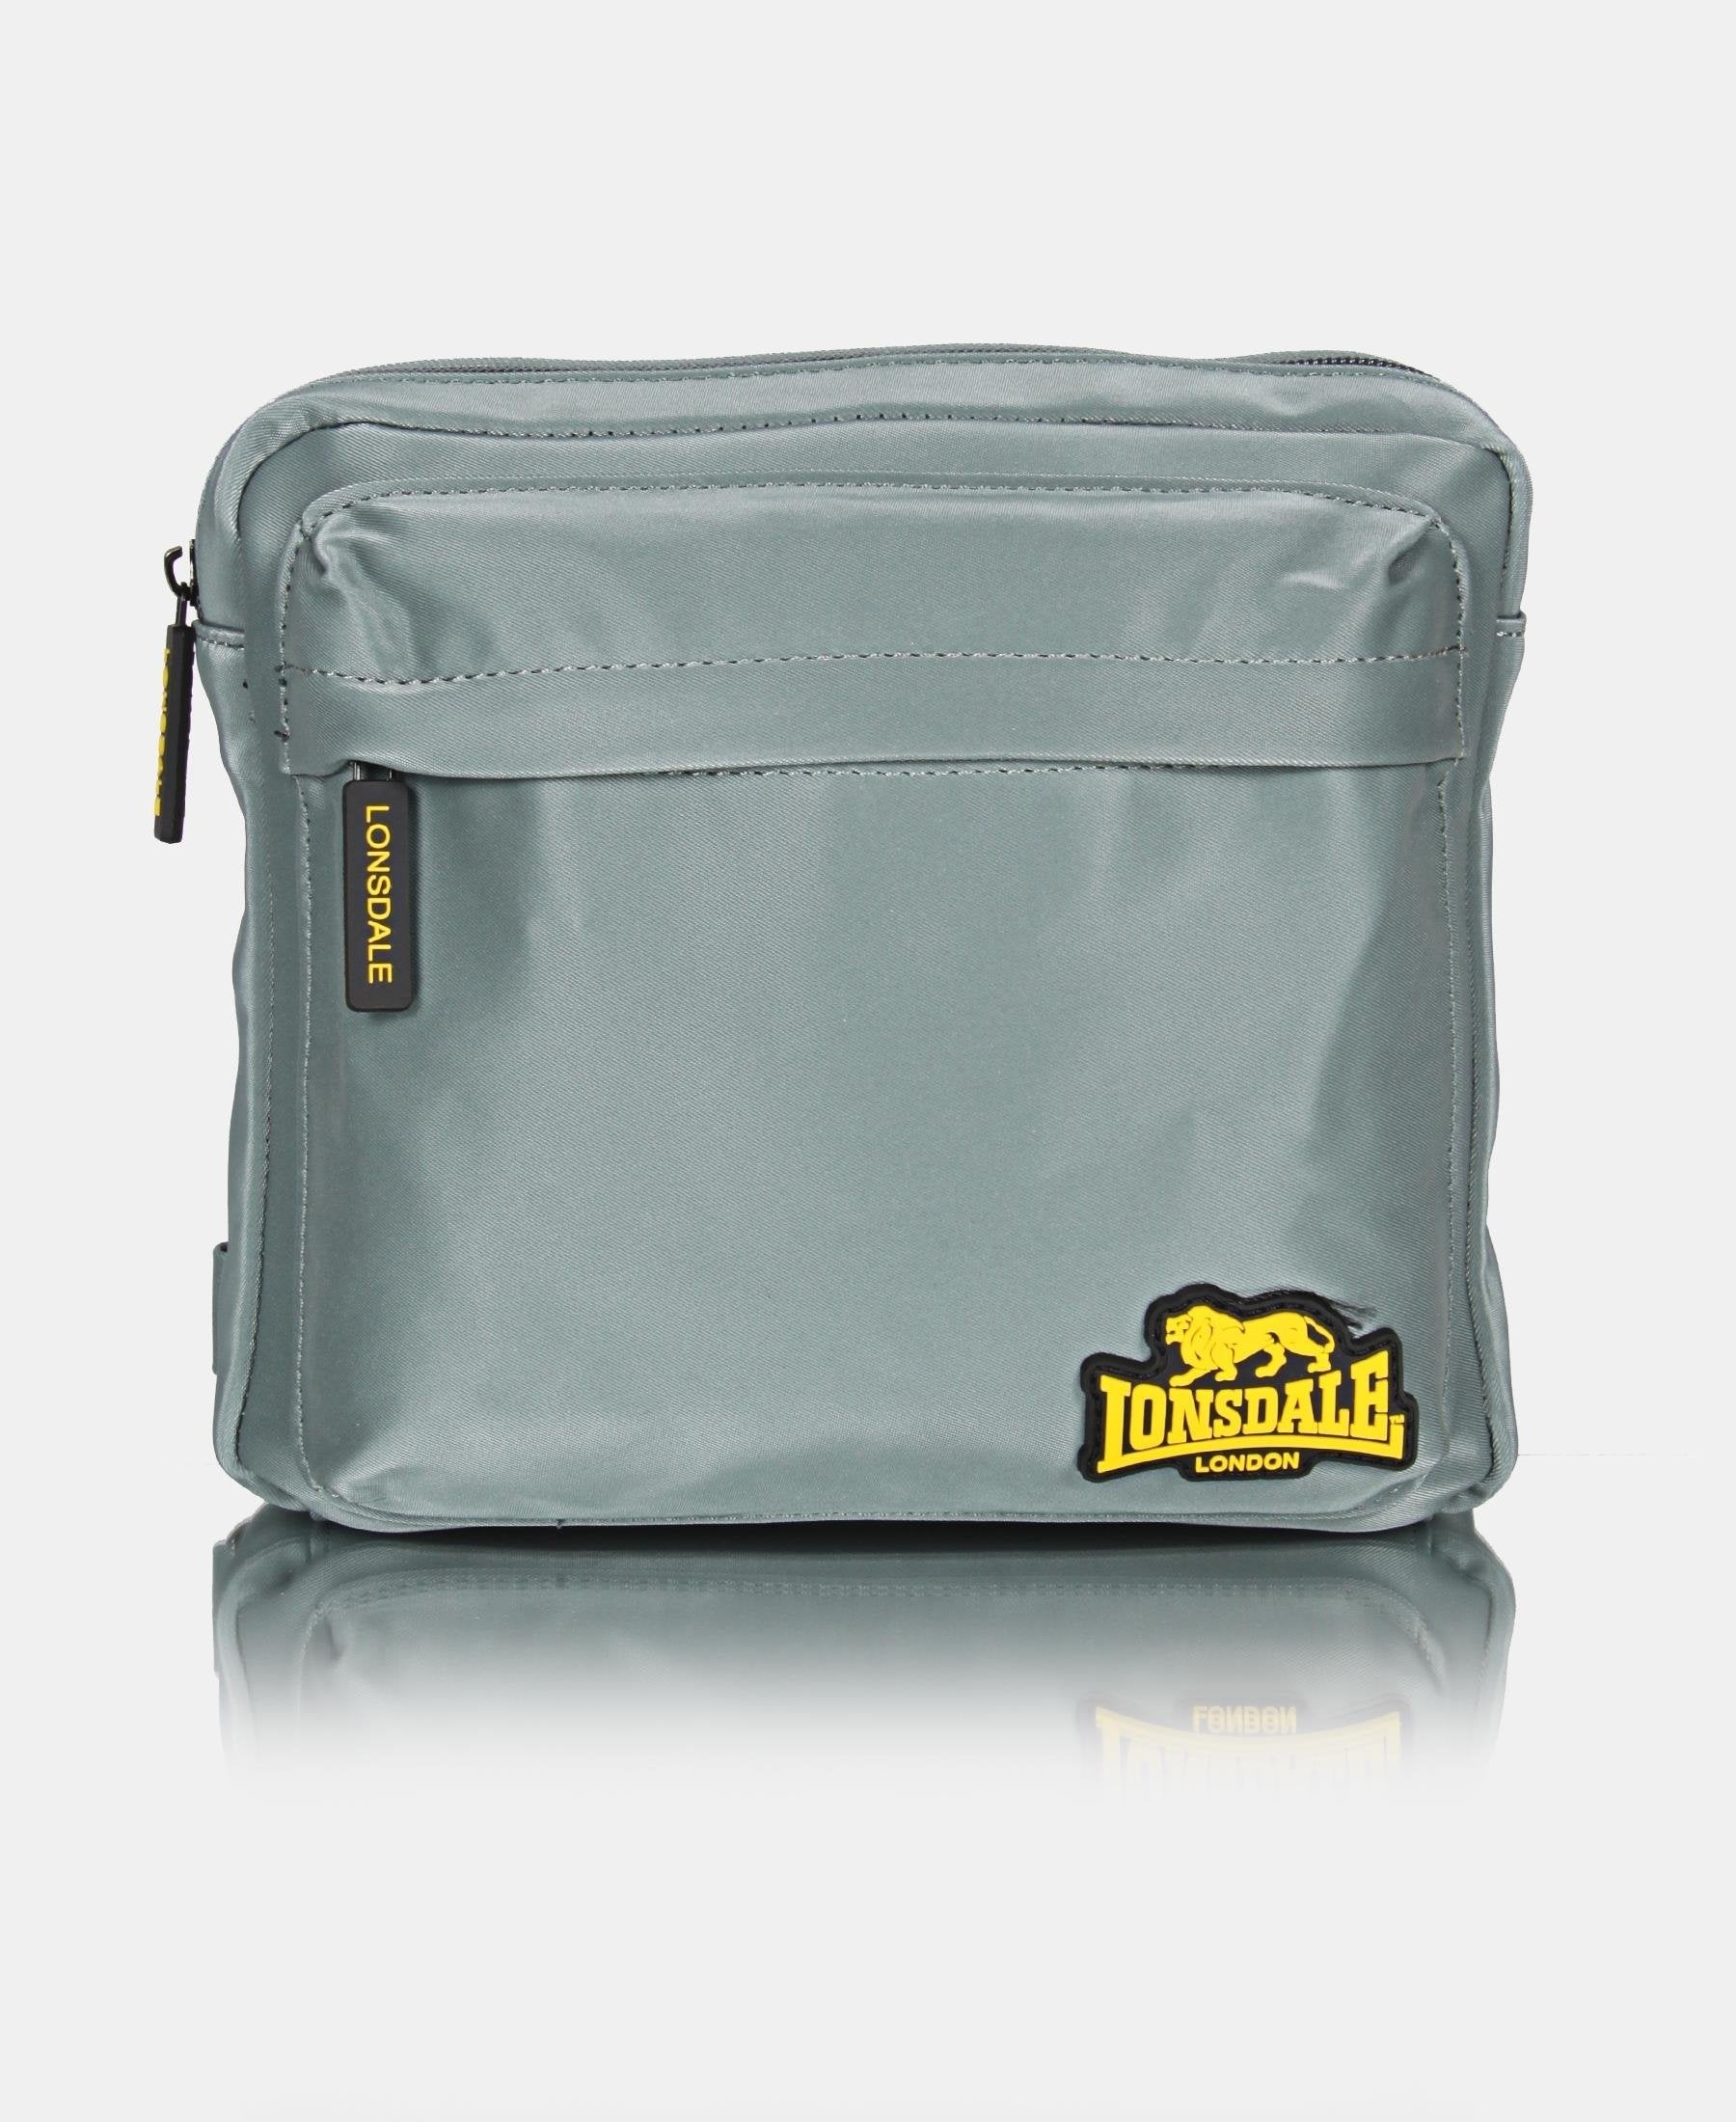 Lonsdale Chest Bag - Grey